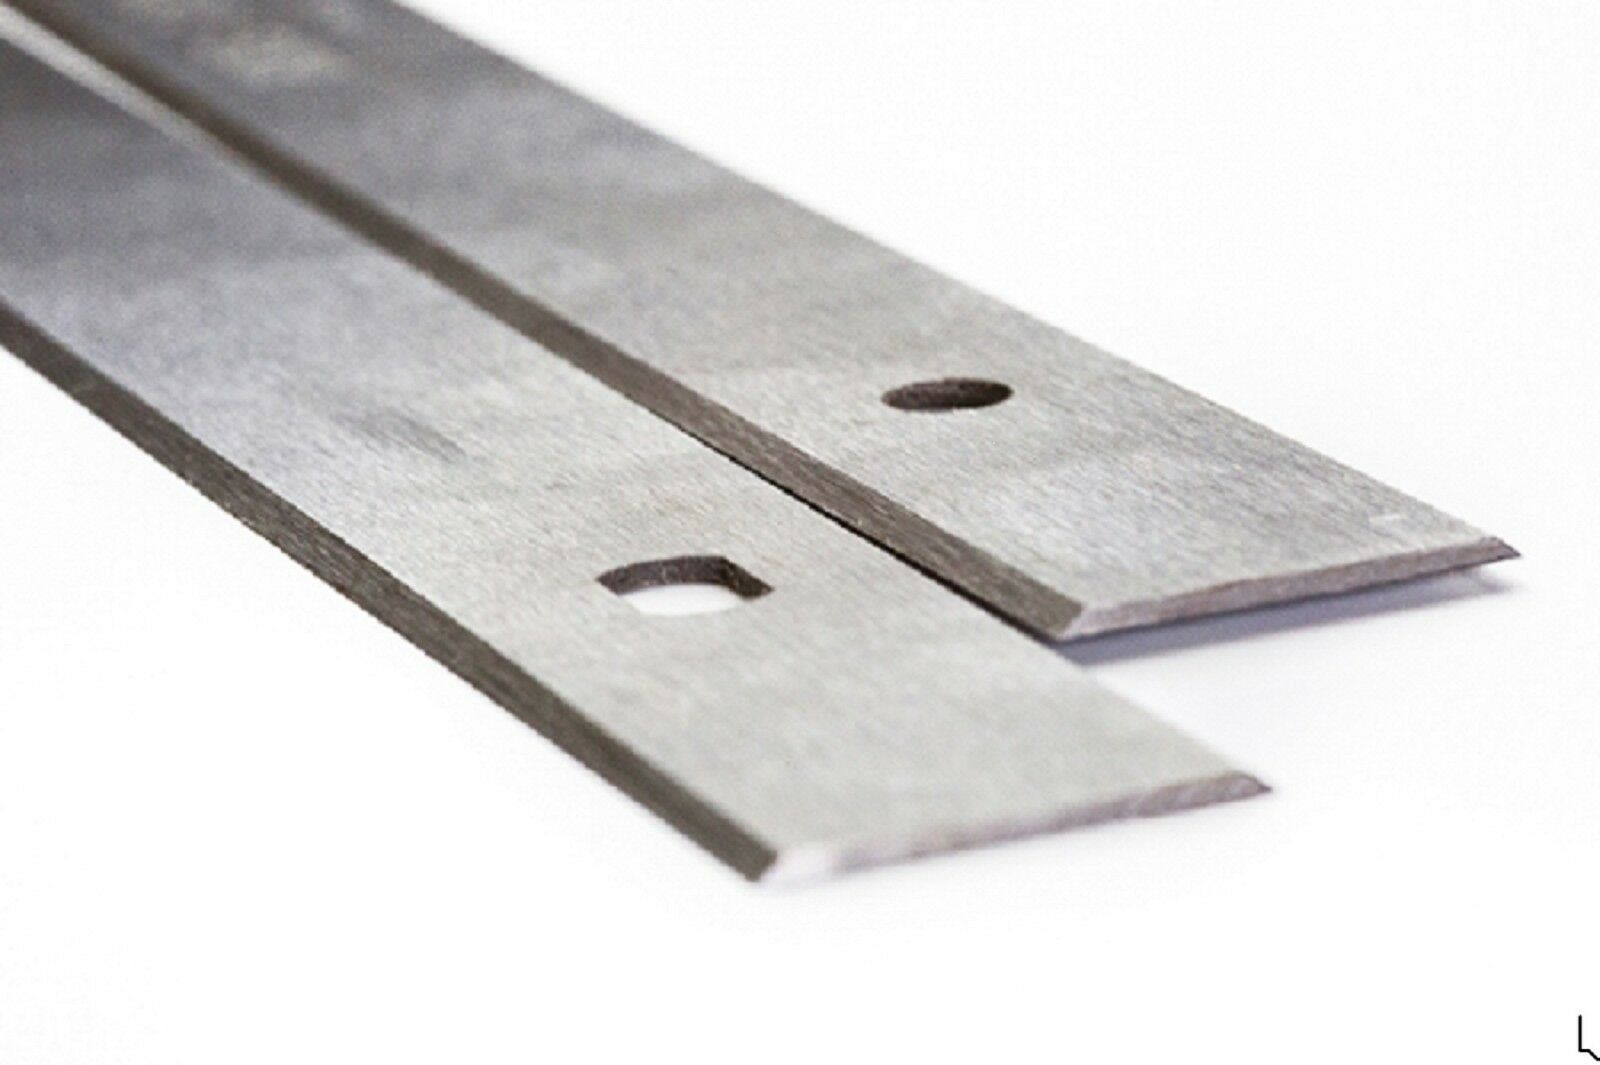 200mm HSS Double Edged Blades to fit Kity 439 Planers 200 x 18.6 x 1.1 B200